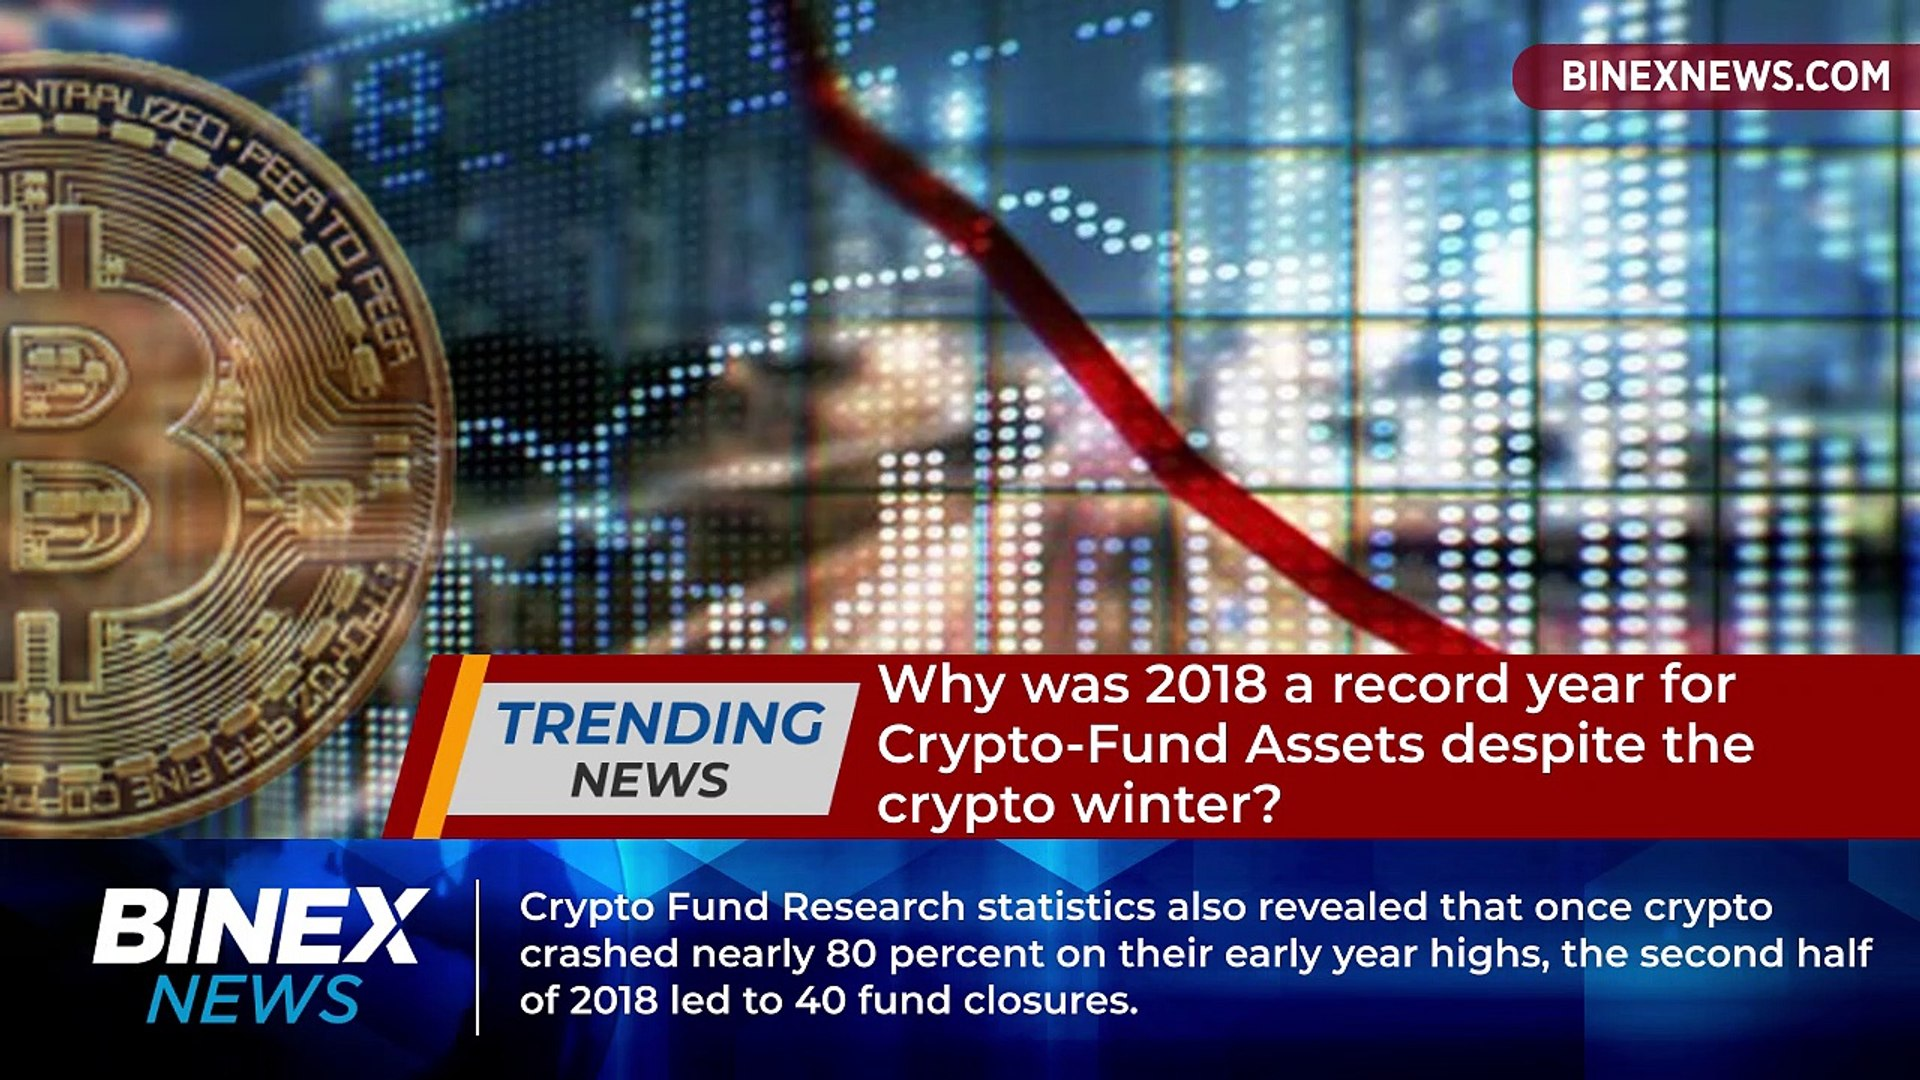 Record Year for Crypto-Fund Assets Despite the Crypto Winter!